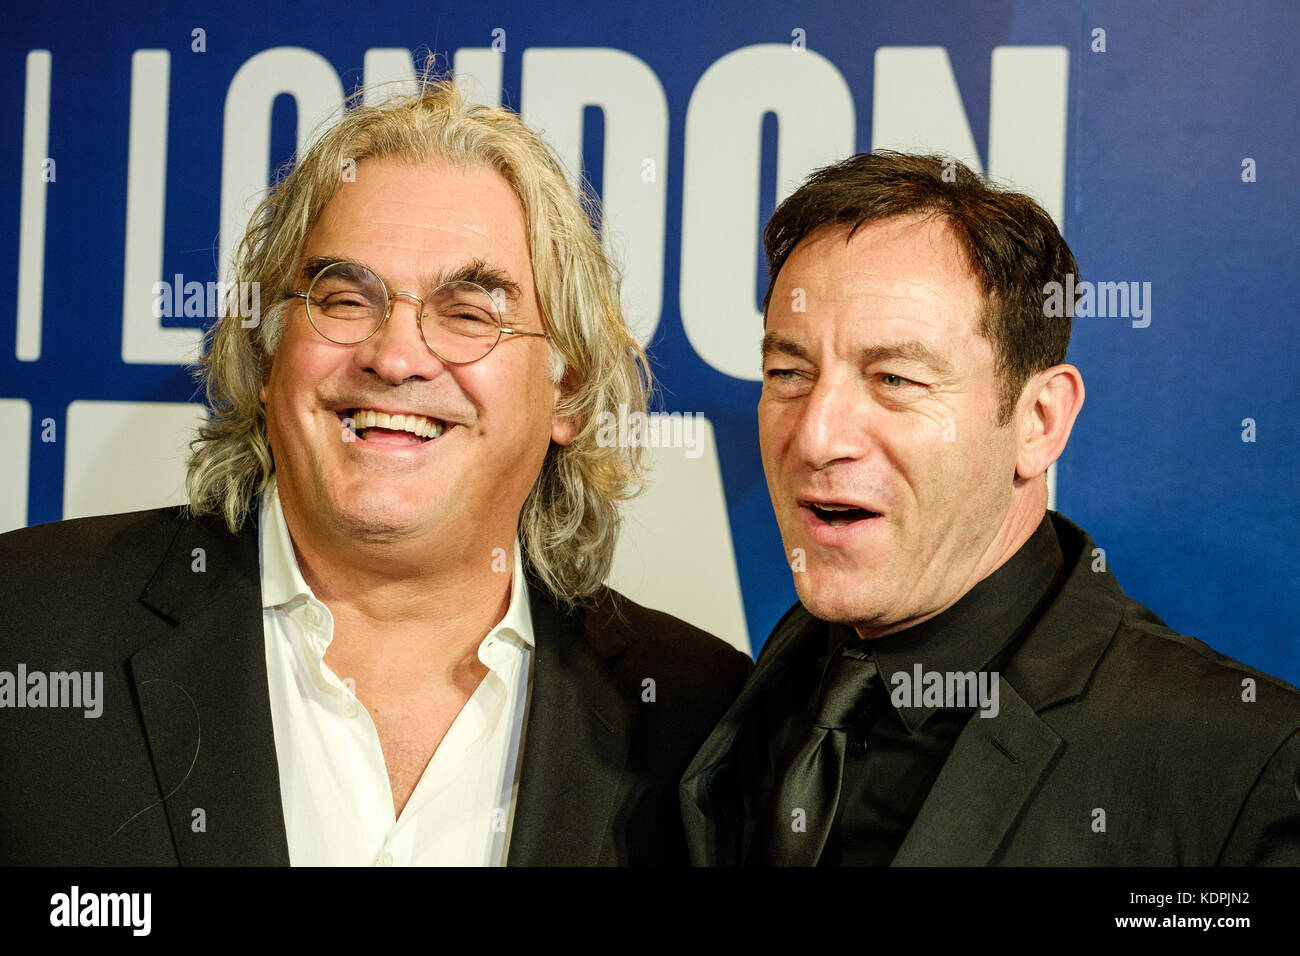 London, UK. 14th October, 2017. Jason Isaacs, Paul Greengrass at the Festival Awards Dinner for the  London Film - Stock Image